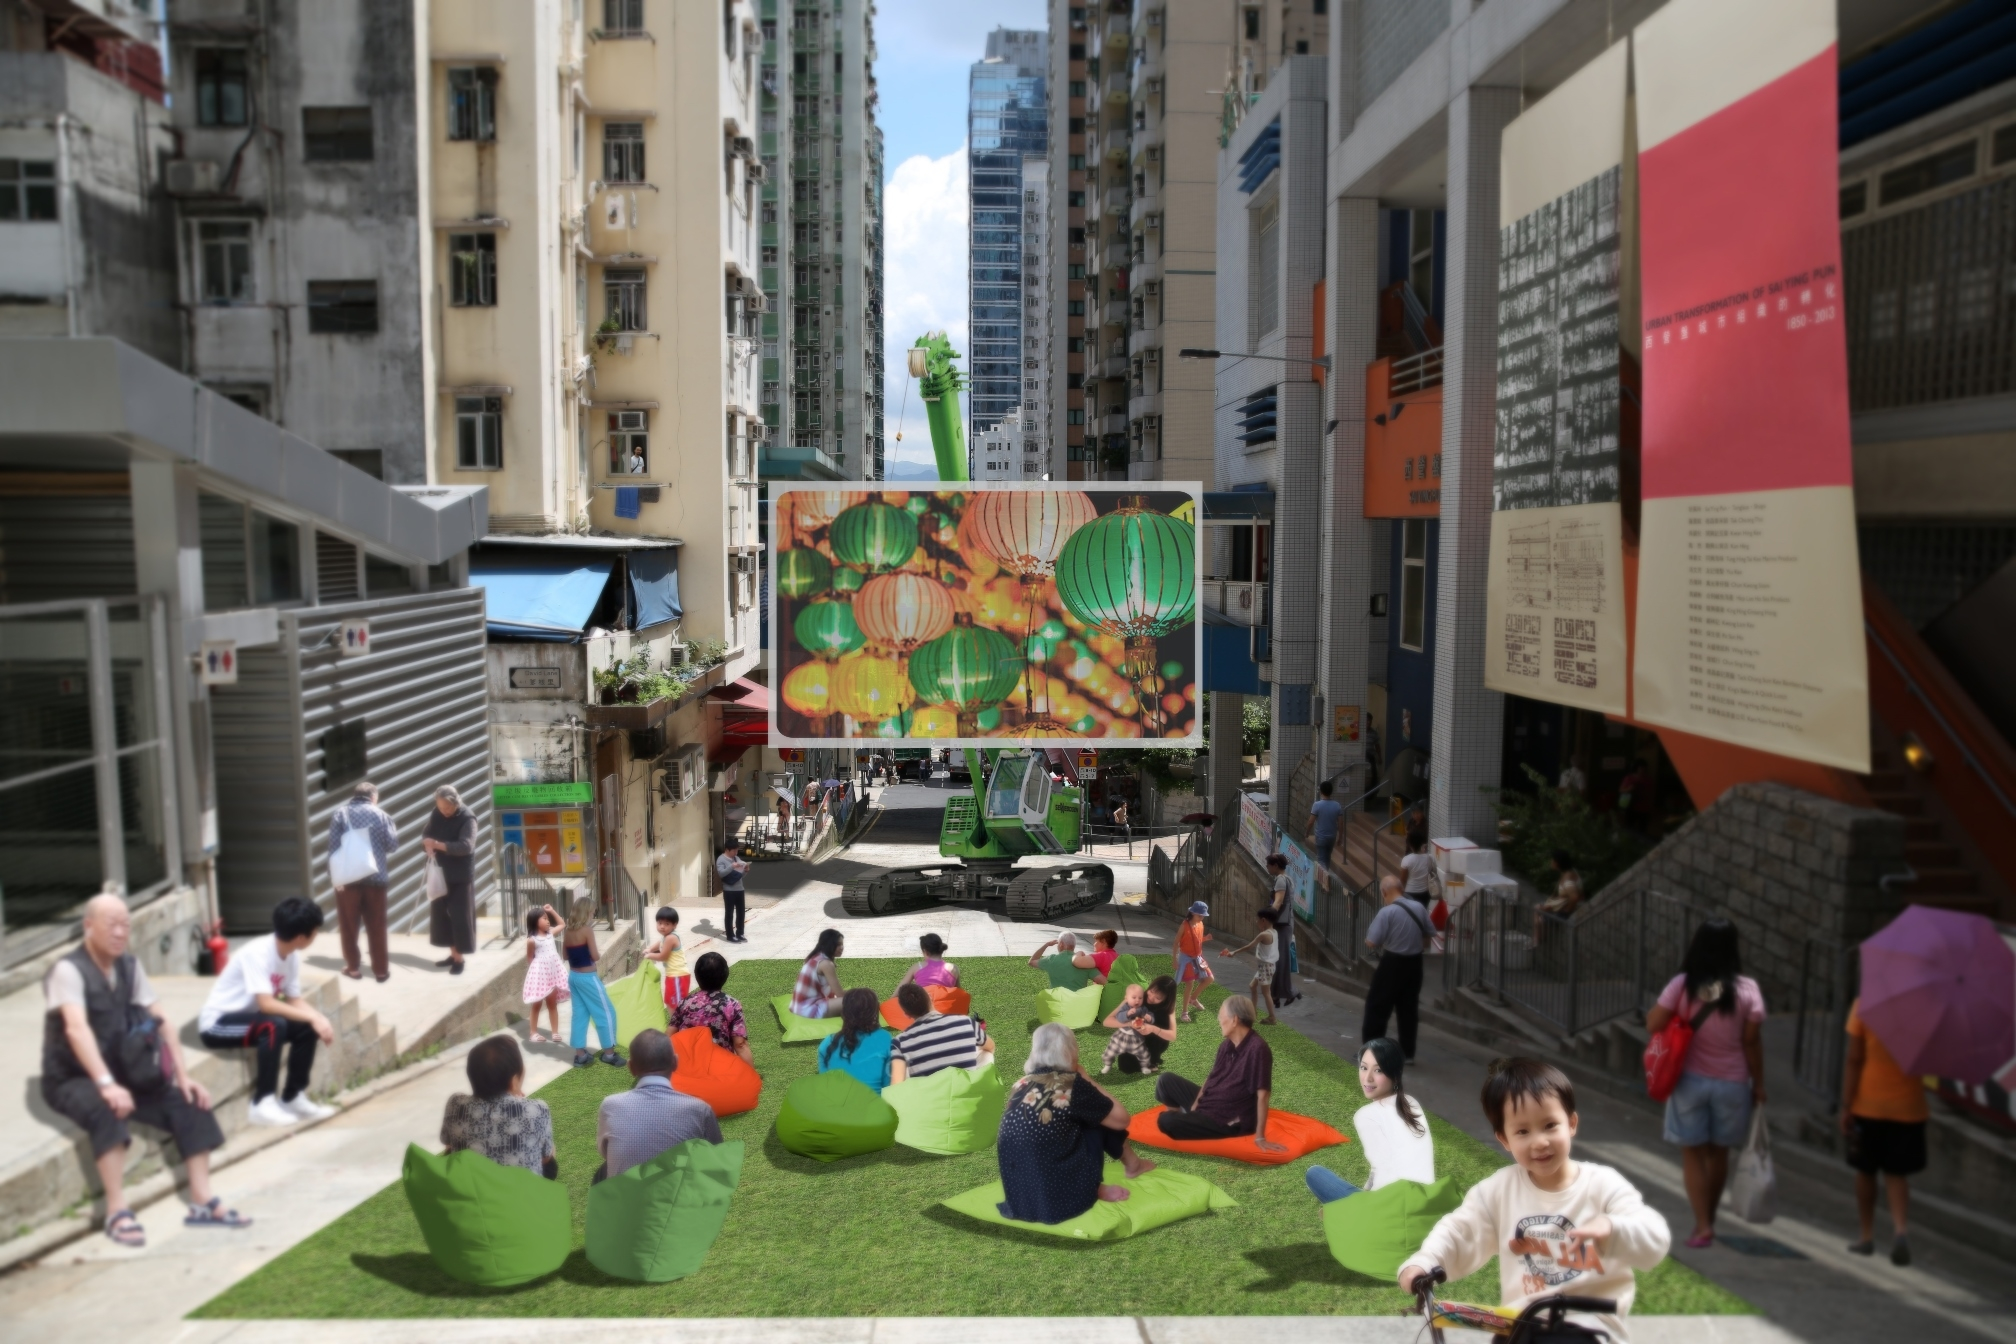 """""""Magic Carpet: Re-envisioning Community Space in Sai Ying Pun"""" transforms the sloped Centre Street in Sai Ying Pun into an outdoor cinema for one night at the Mid-autumn Festival. (Image:Francesco Rossini)"""